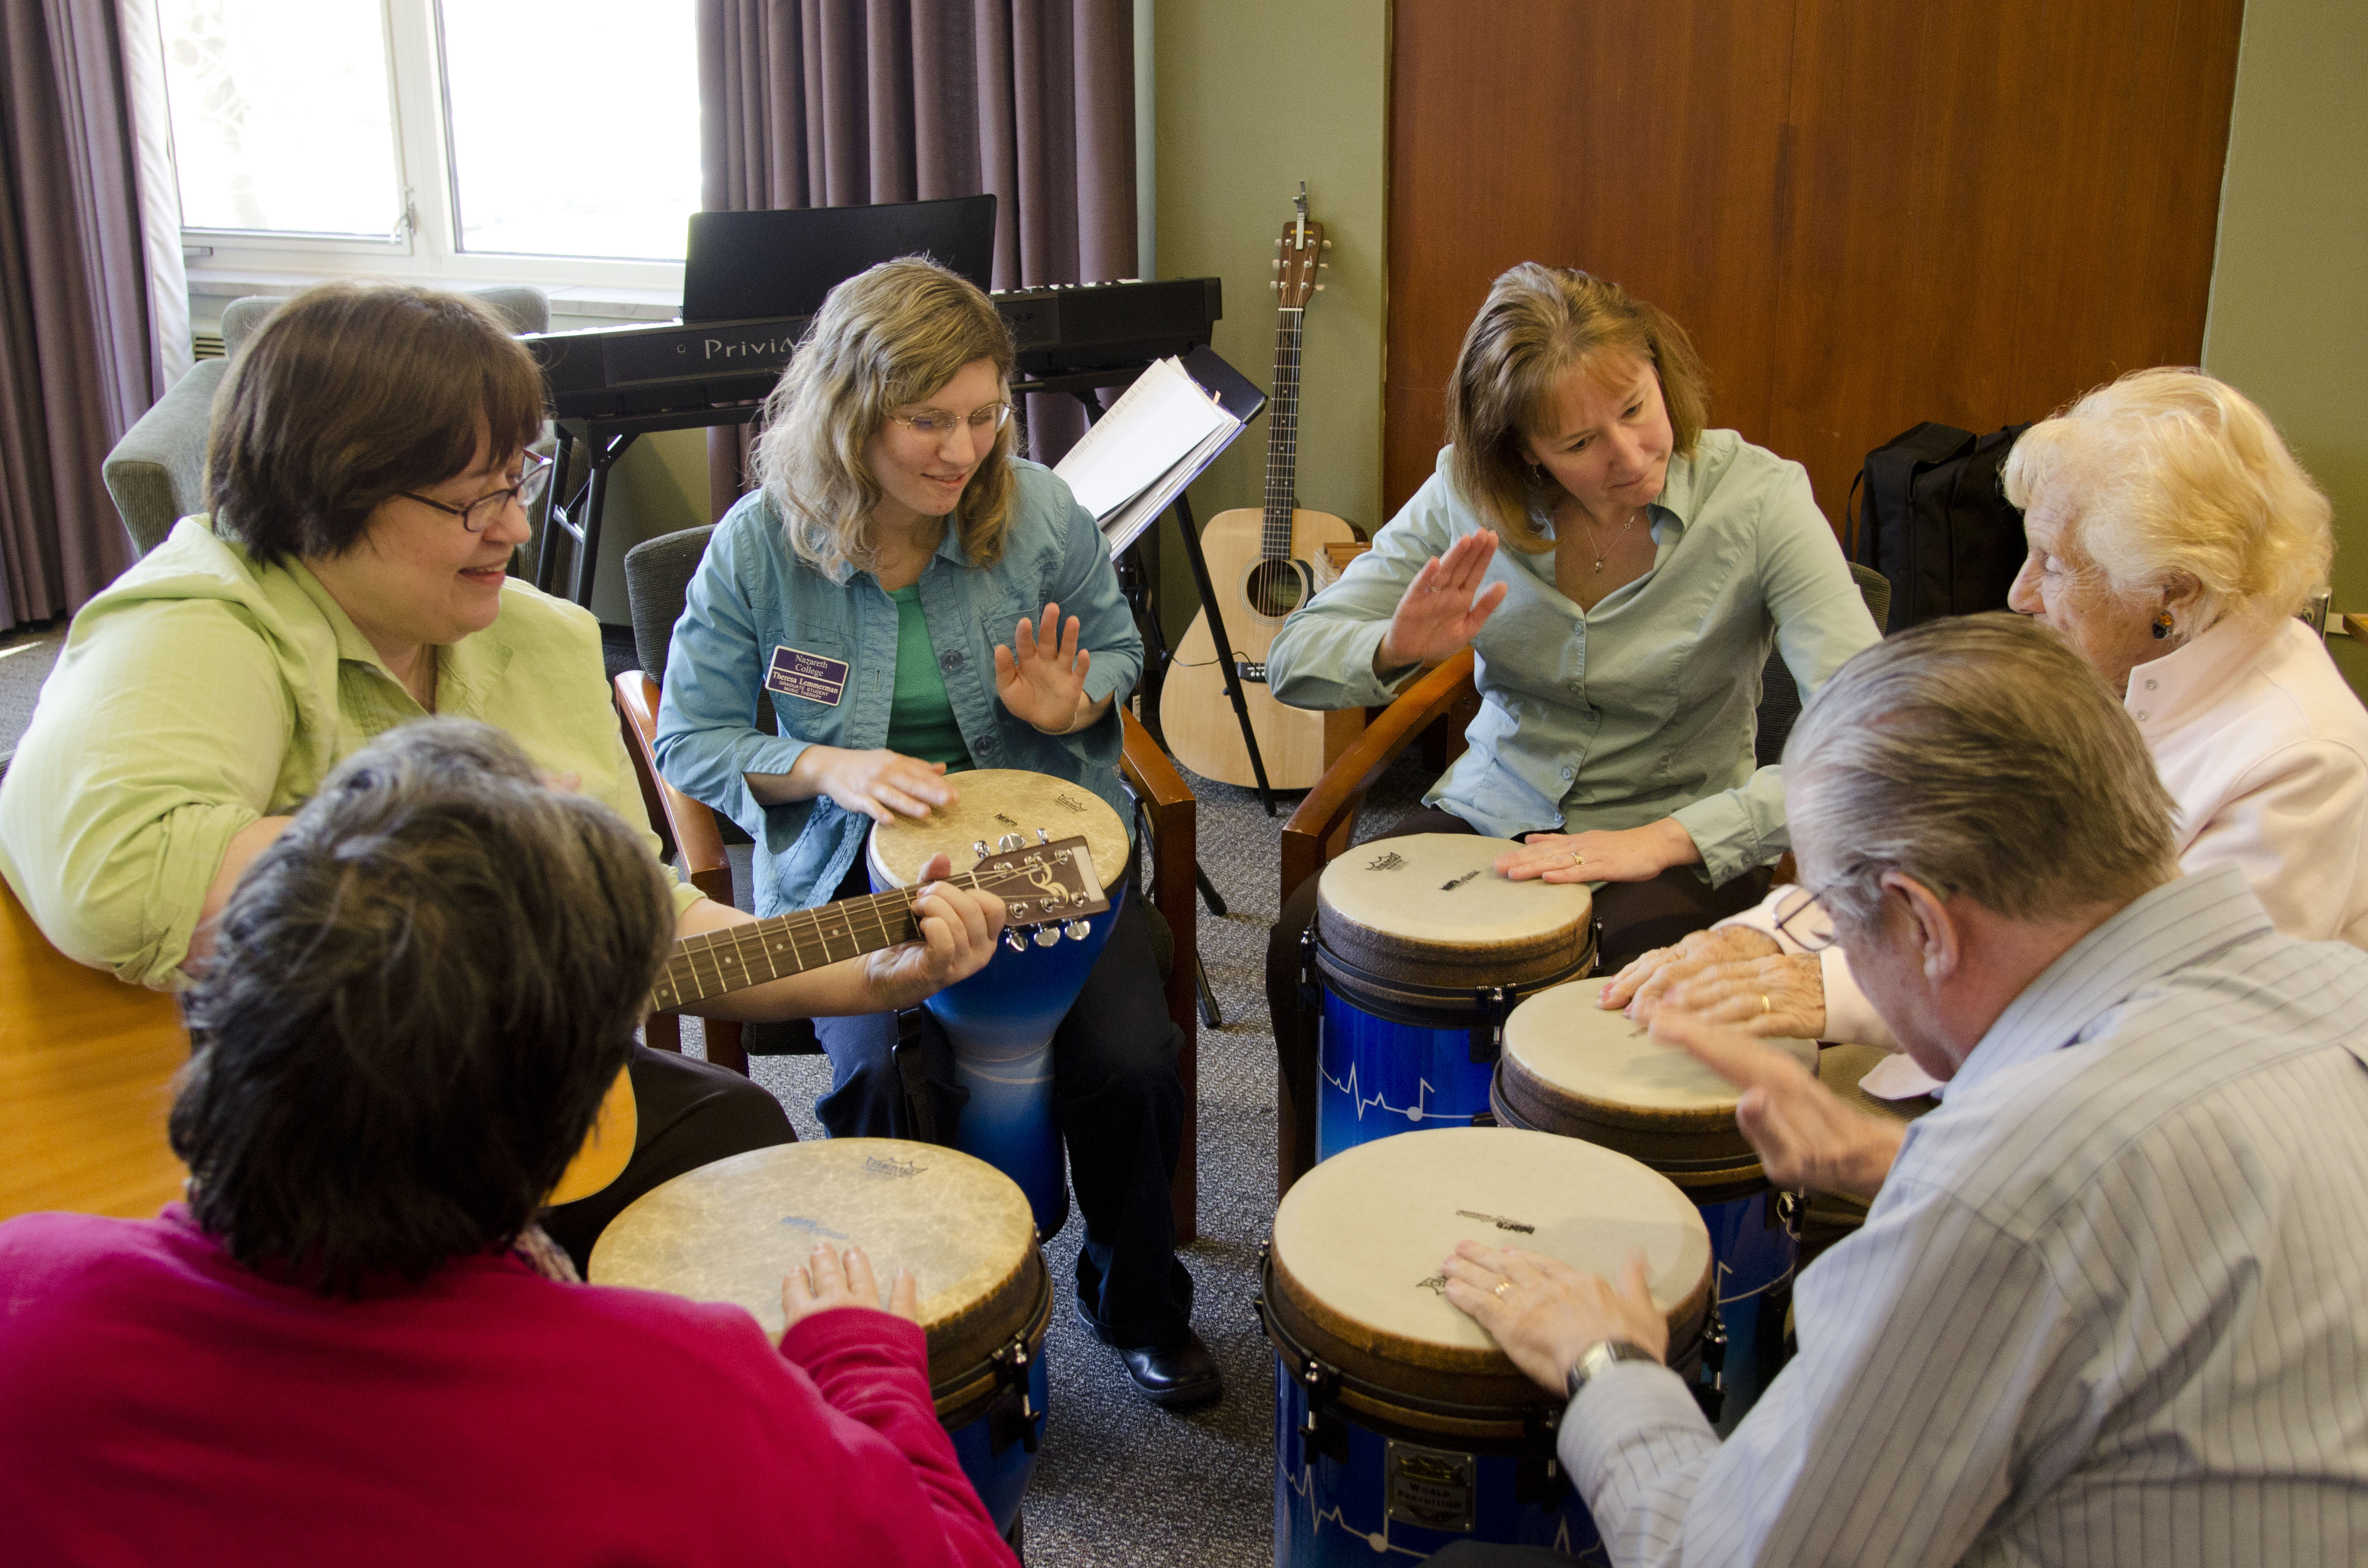 musical therapy history and medicine impact Music therapy in hospitals hospitalization can result not only in physical stress from invasive treatments and therapies, but emotional stress as well from unexpected news, unfamiliar environments, inability to conduct normal activities and lack of control.